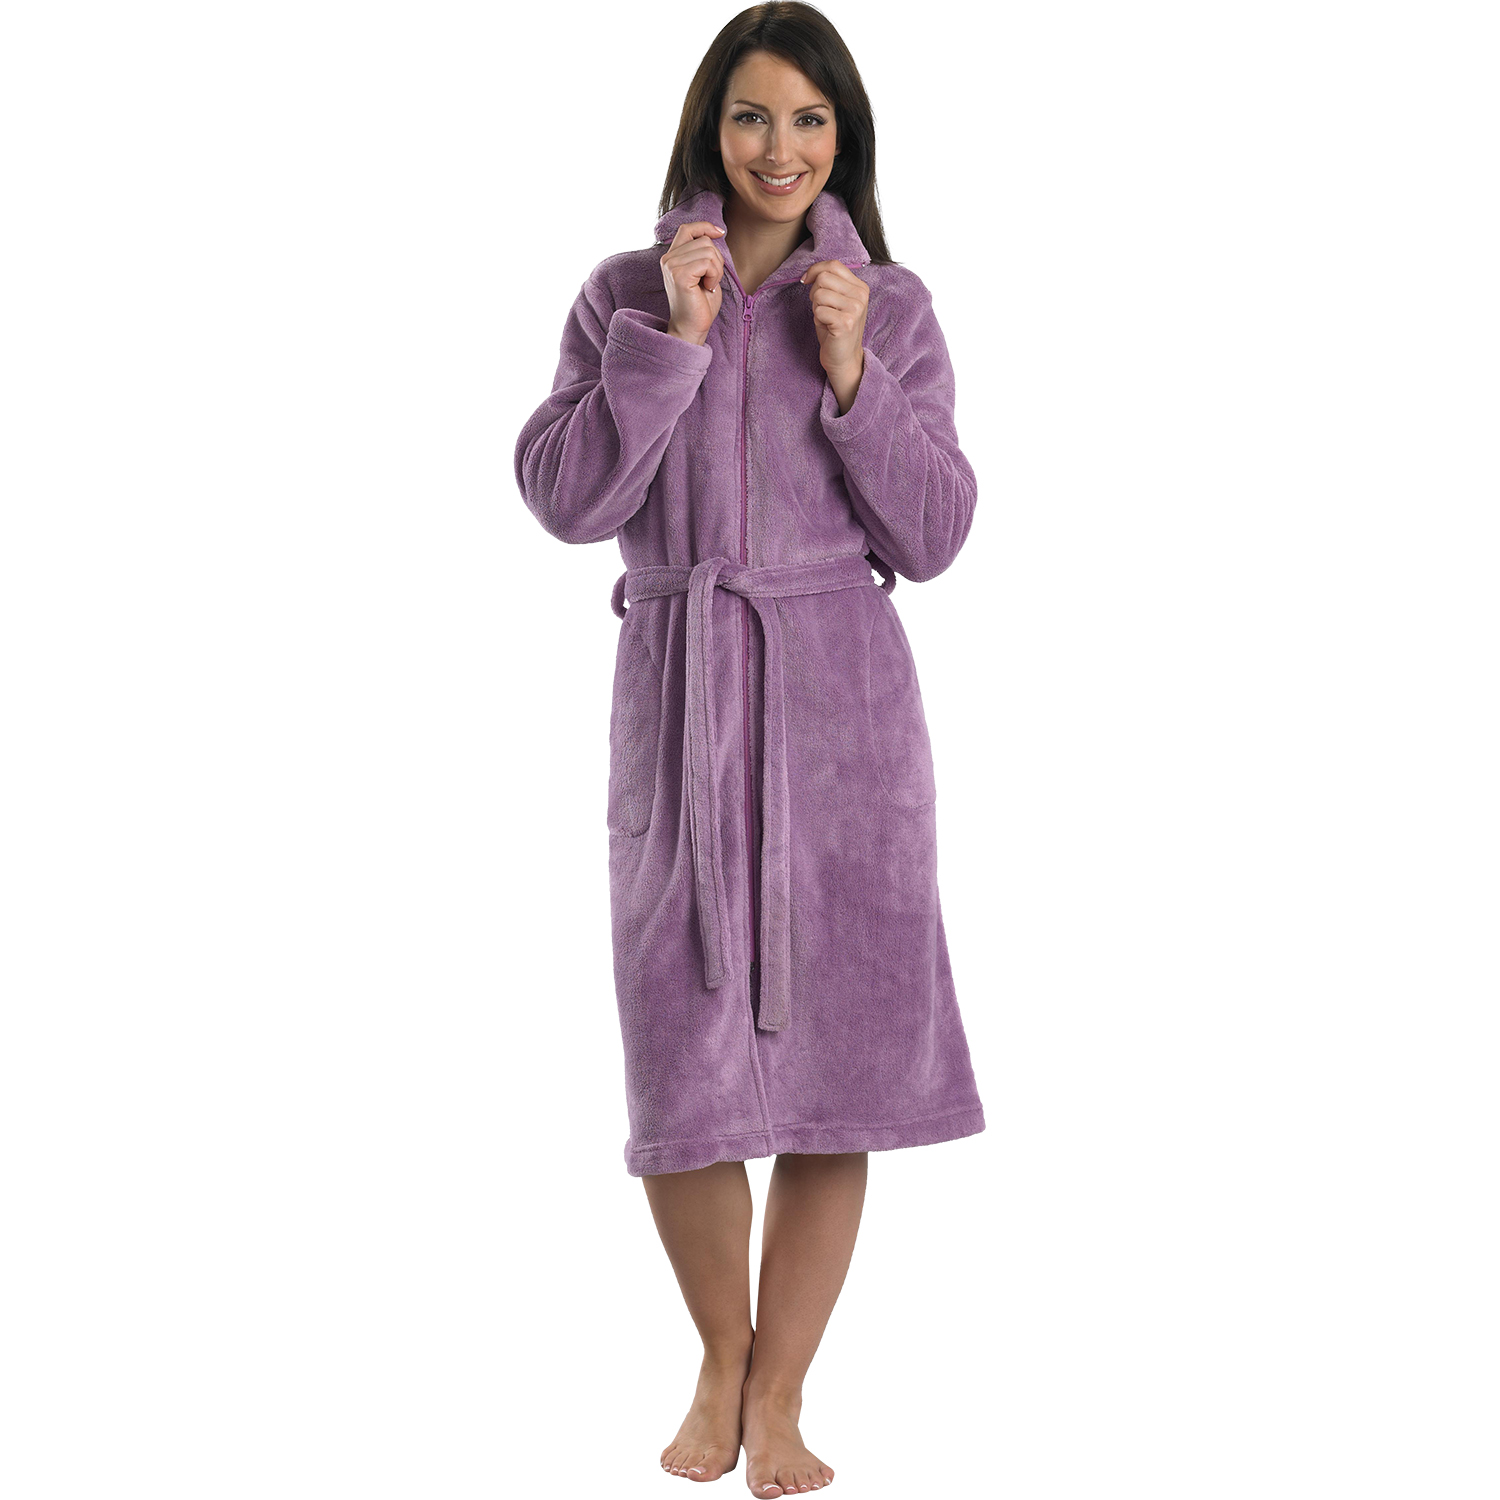 Bathrobe: Womens Luxury Gift Wrapped Zip Bathrobe Ladies Slenderella